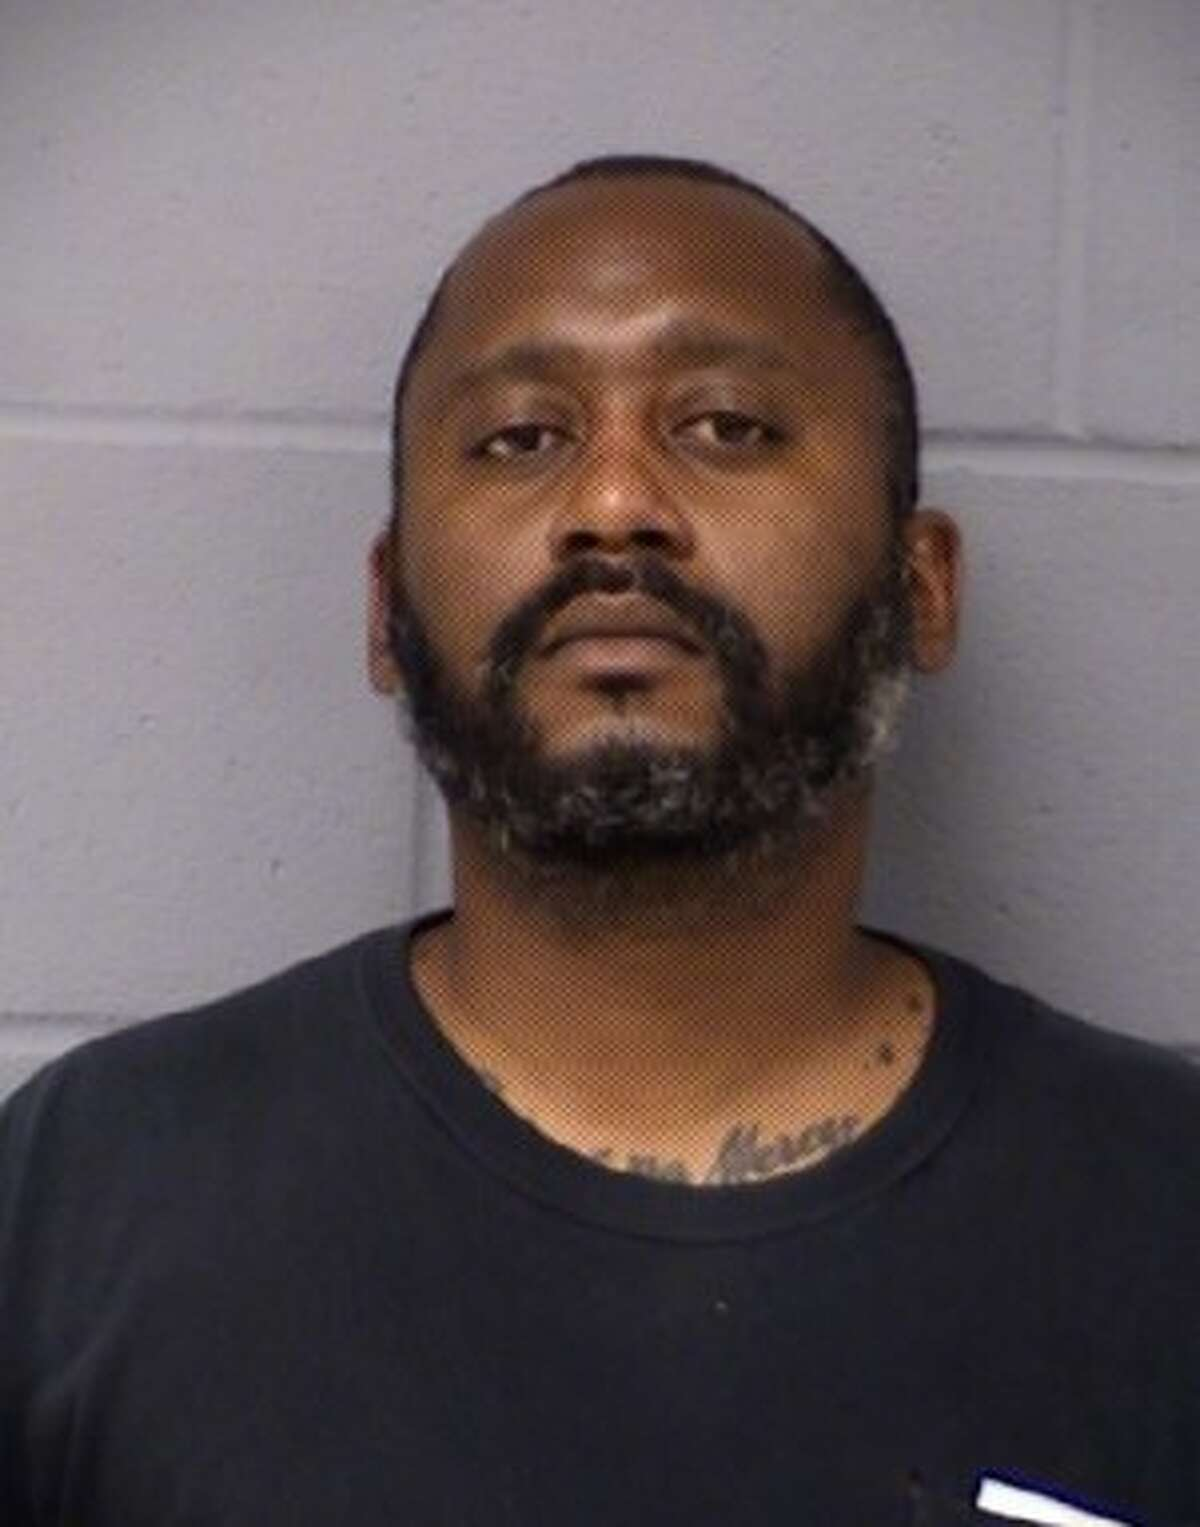 Austin police identified Stephen Broderick, 41, as a suspect in the fatal shooting of three people on Sunday, April 18, 2020.